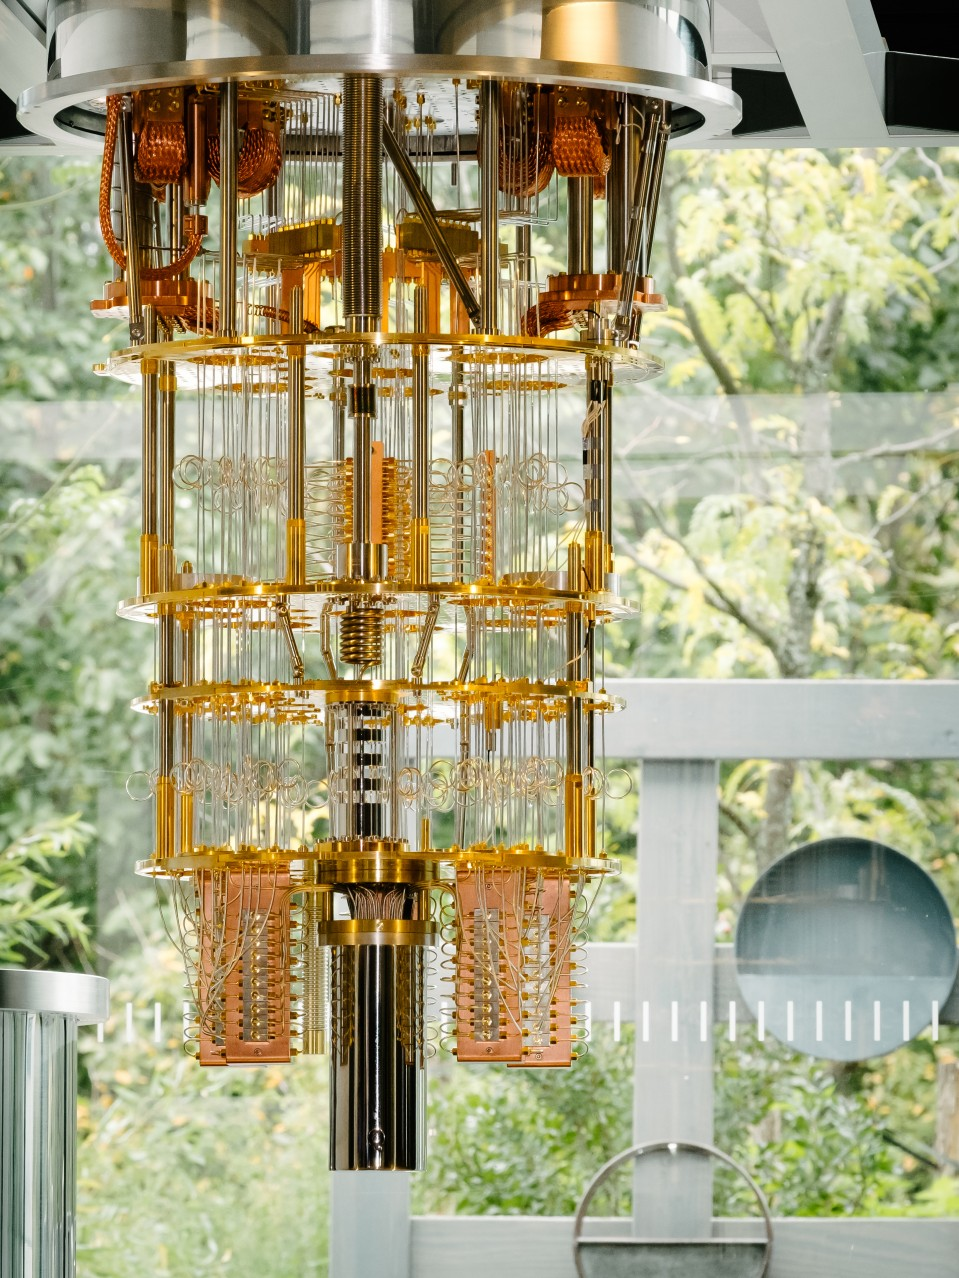 IBM Raises the Bar with a 50-Qubit Quantum Computer - MIT Technology